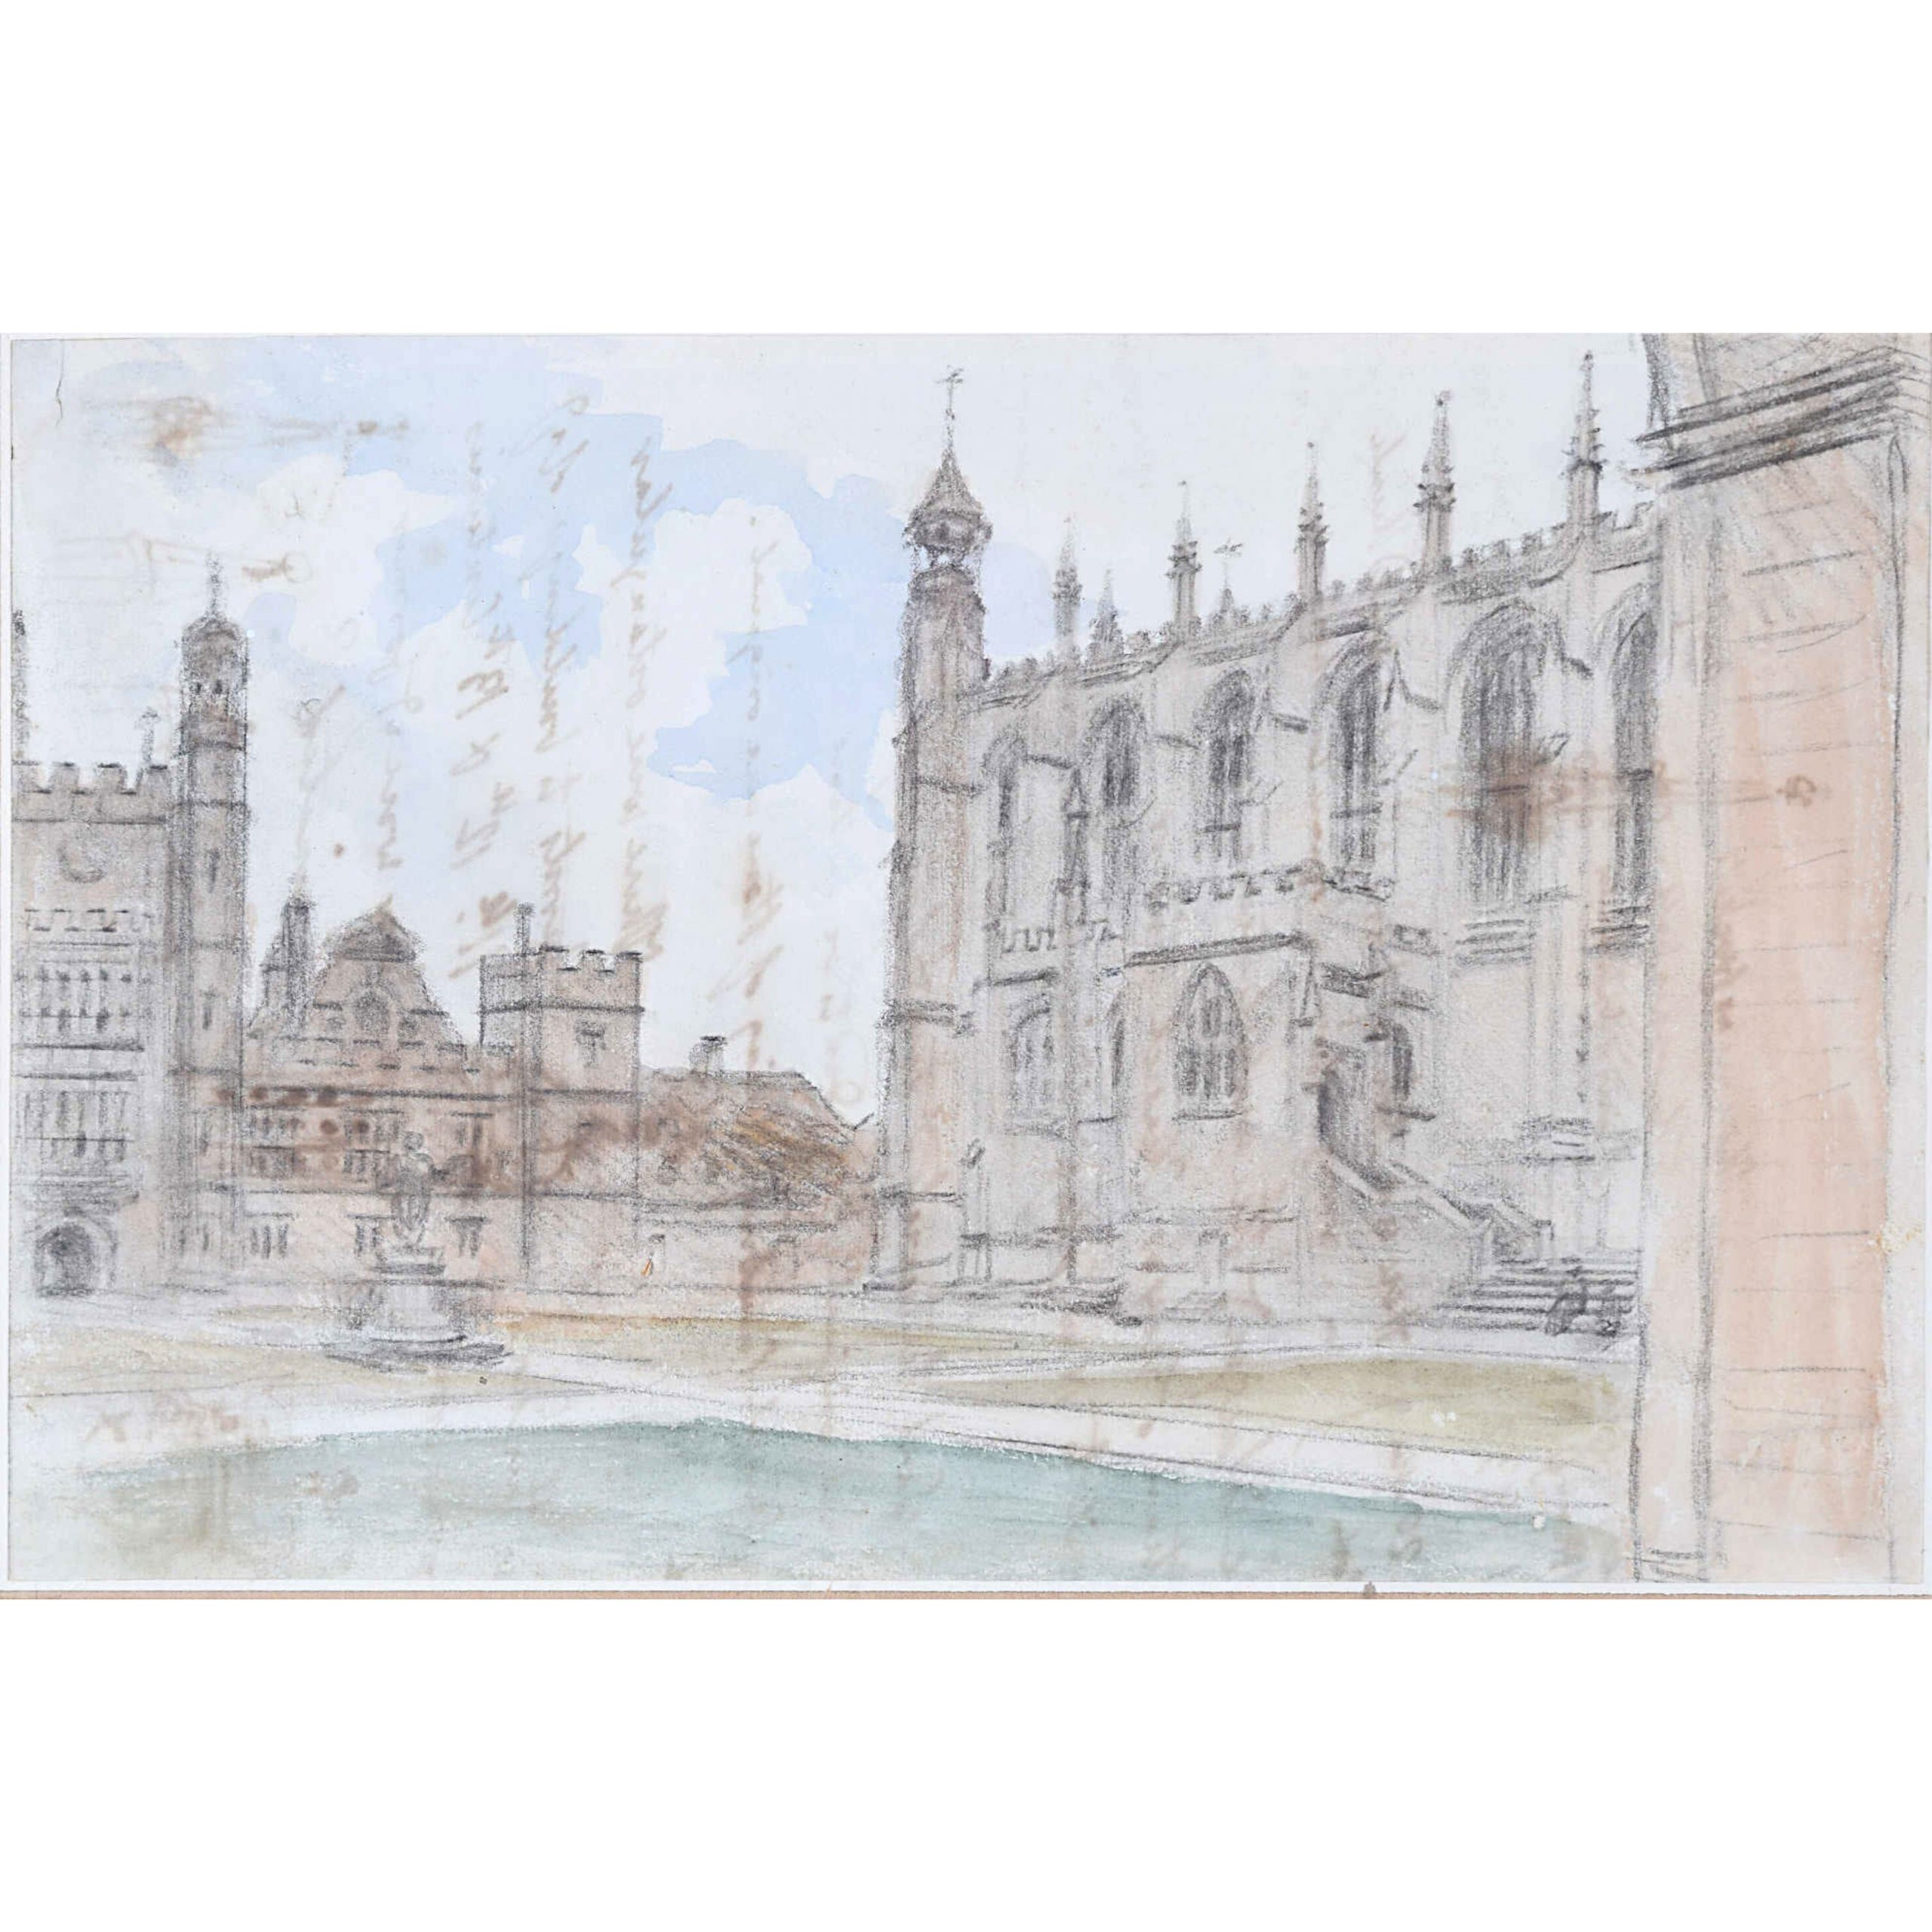 Dr William Crotch 1832 Eton College Chapel watercolour